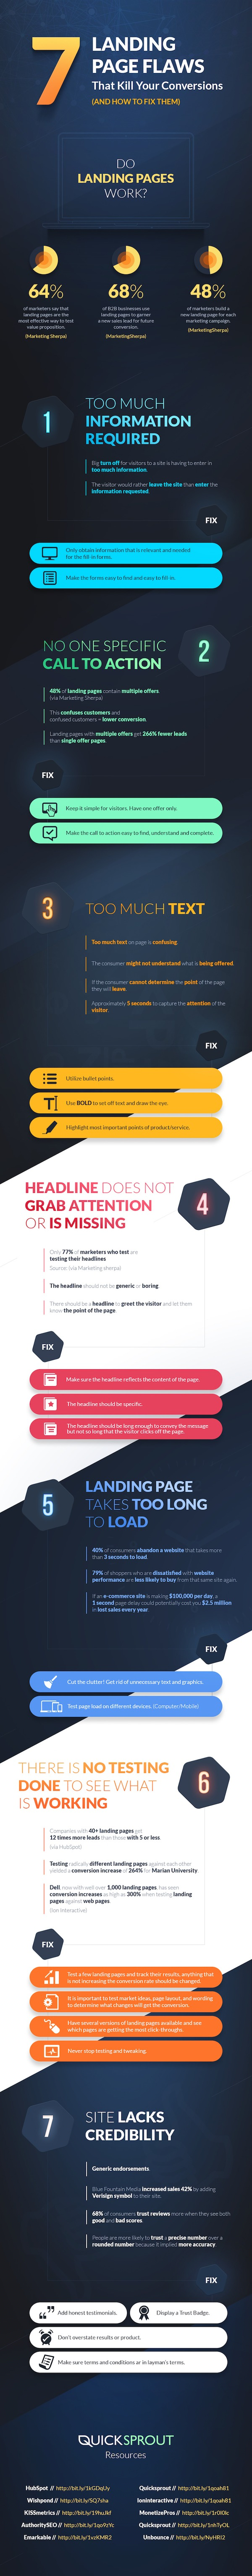 These Landing Page Flaws Could Be Hurting Your Conversion Rates [Infographic] - HubSpot | The Marketing Technology Alert | Scoop.it